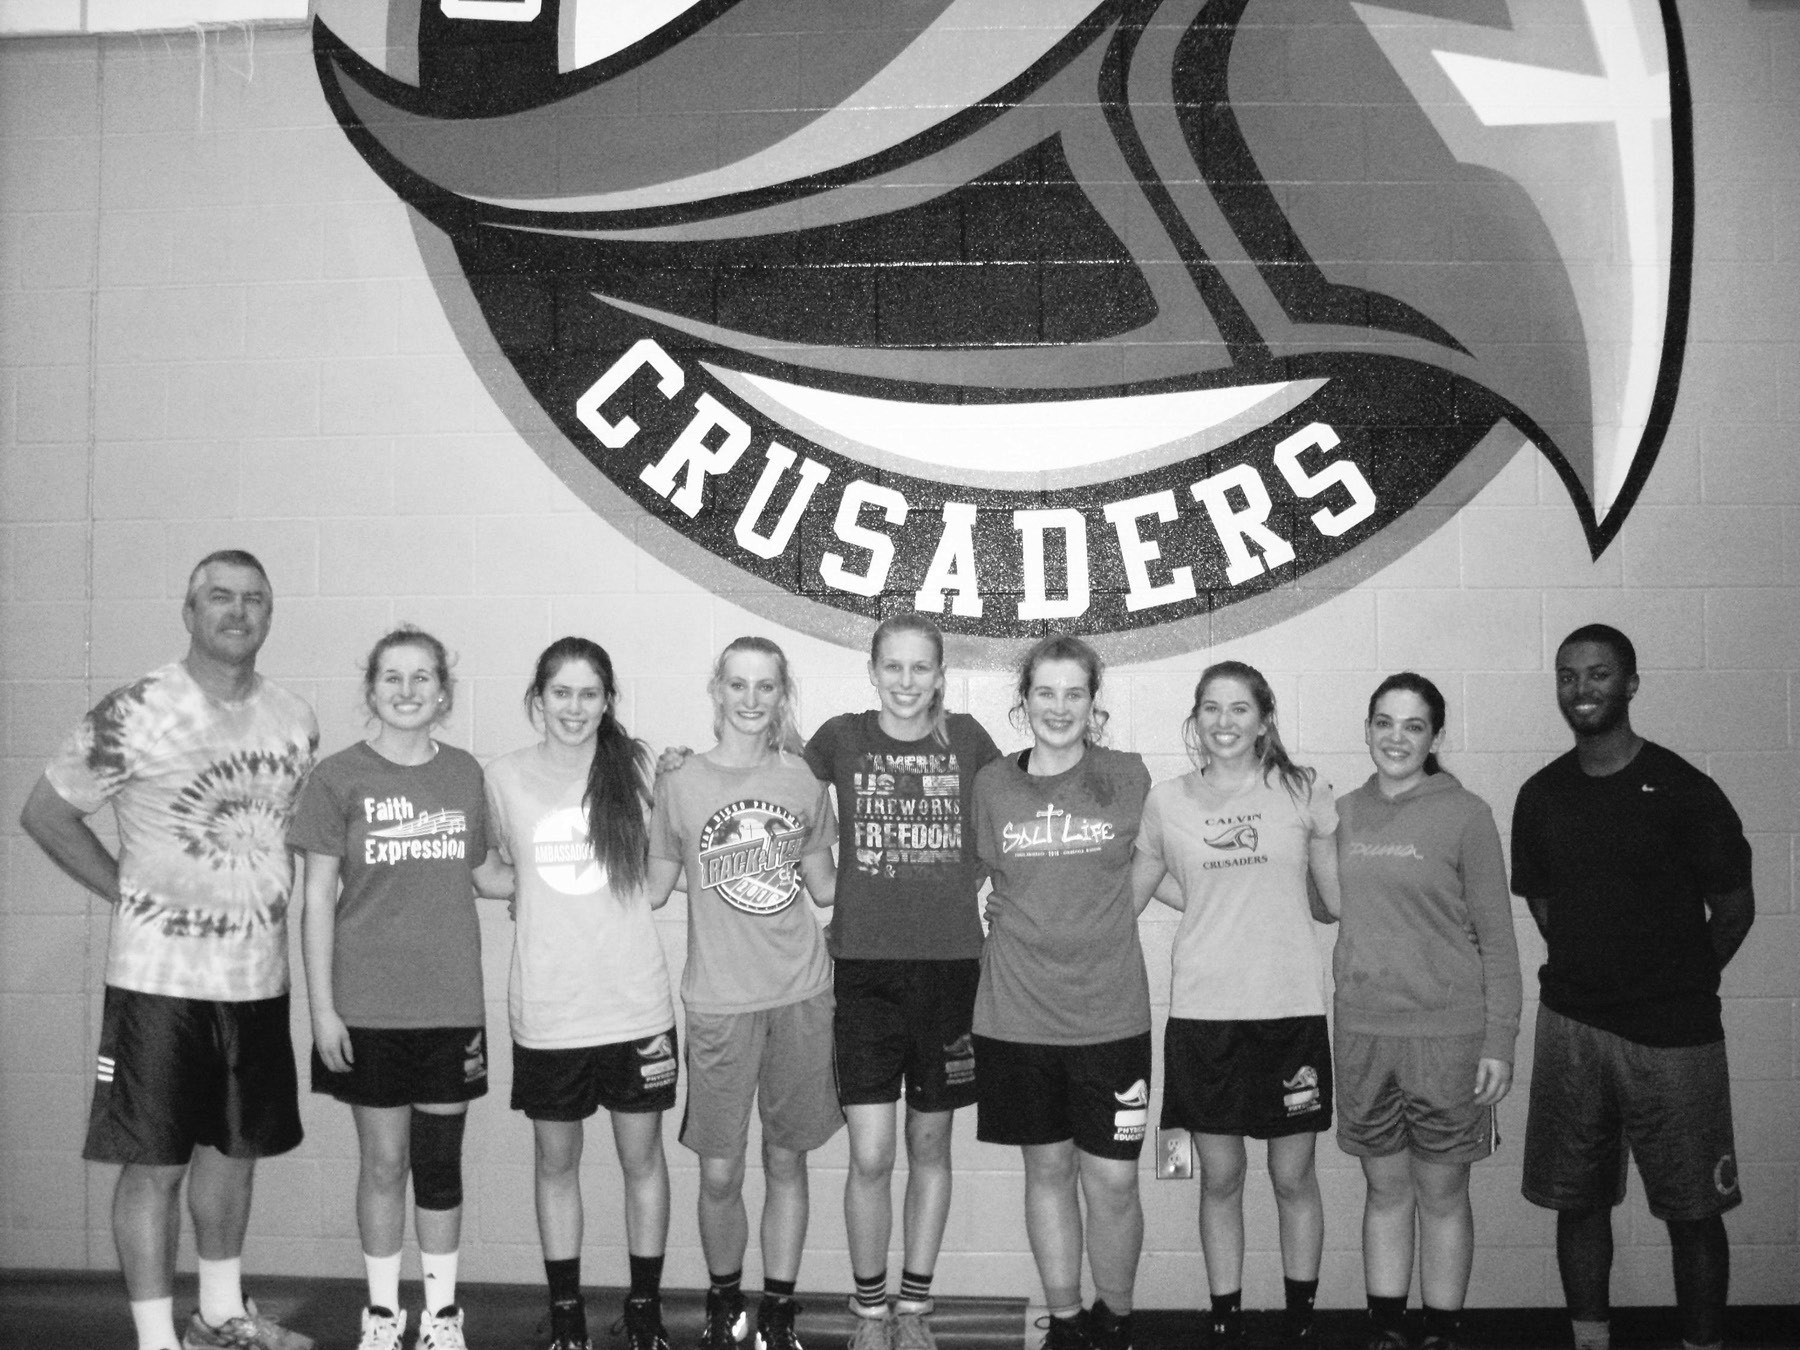 Since deciding to form this team together, these Crusaders have continued to improve their skills as well as their relationships with one another.